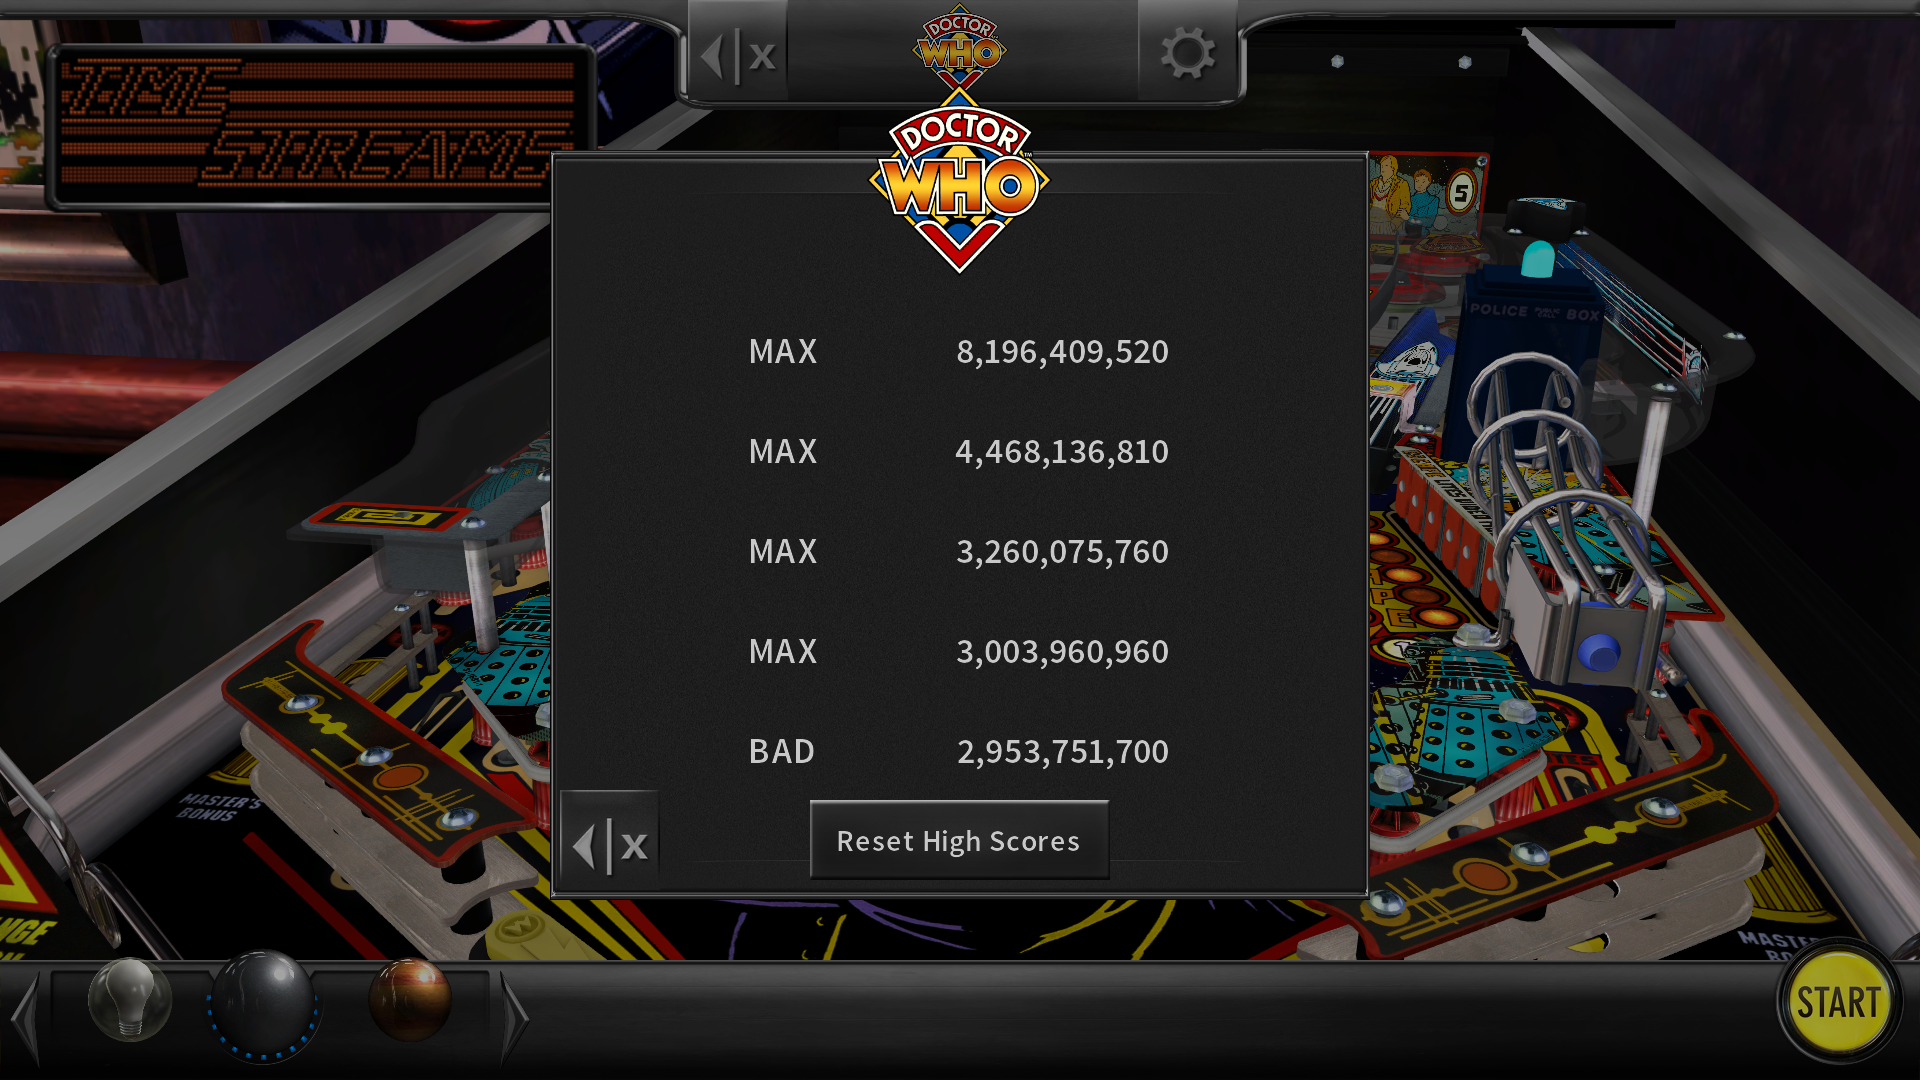 maxgreat: Pinball Arcade: Doctor Who: Master of Time (PC) 8,196,409,520 points on 2018-03-01 04:26:38